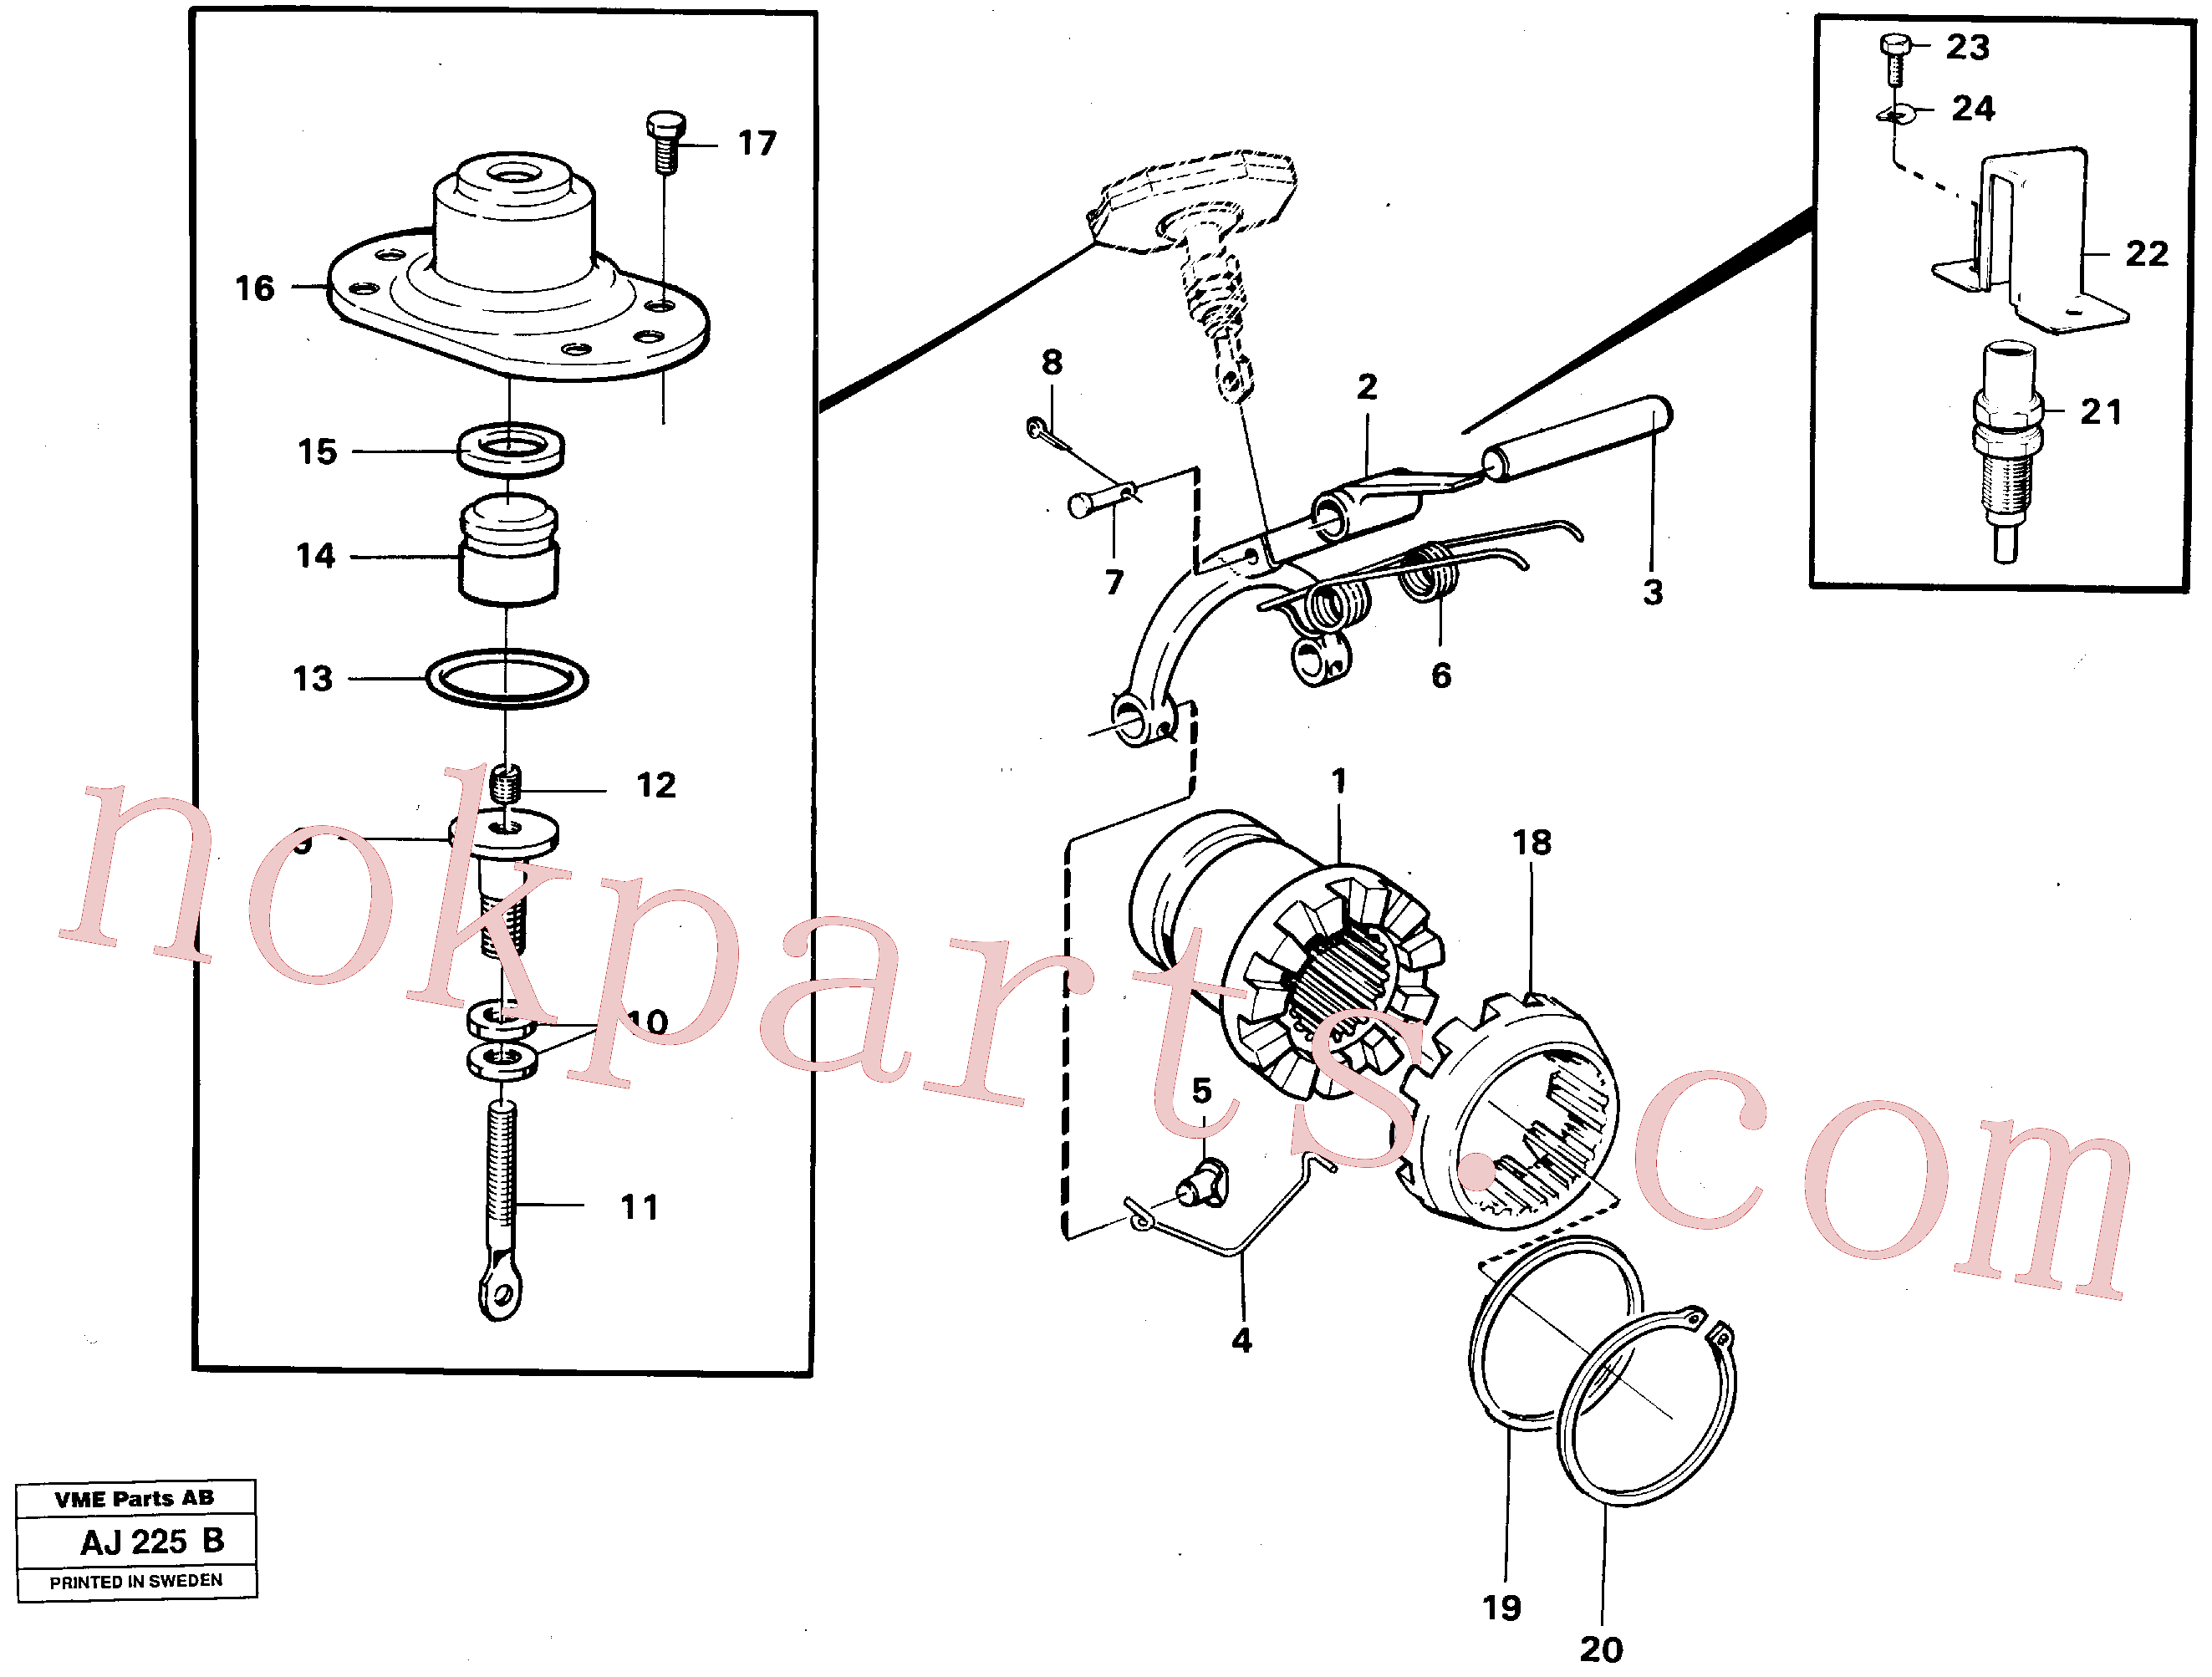 VOE907822 for Volvo Differential lock(AJ225B assembly)